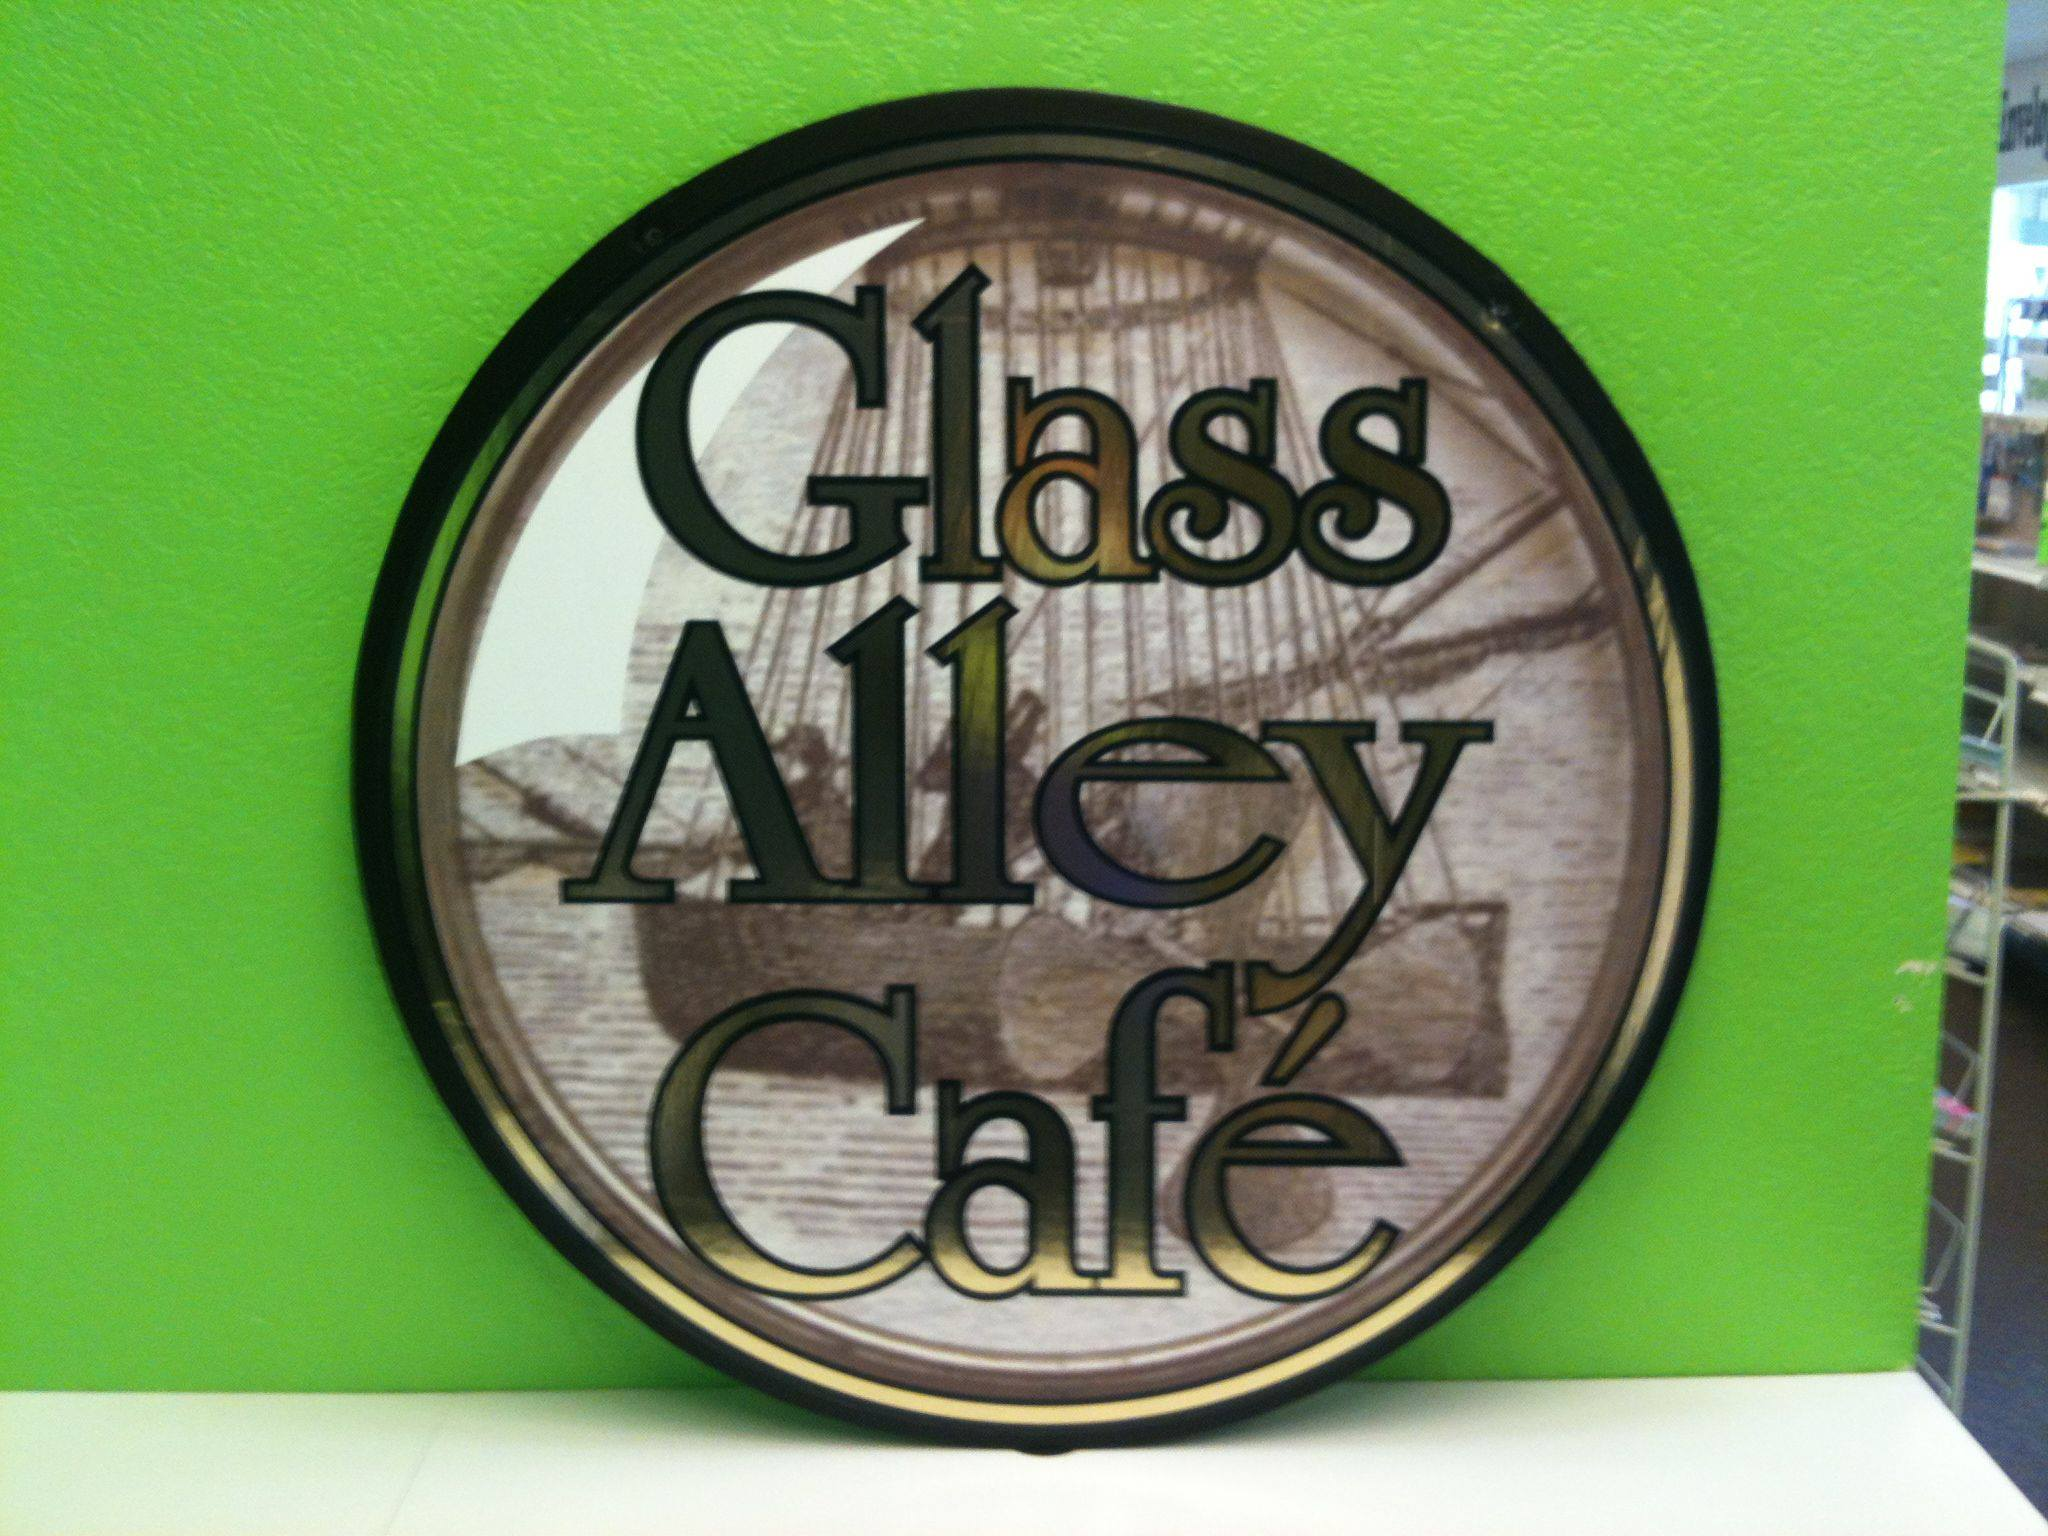 Glass Alley Cafe